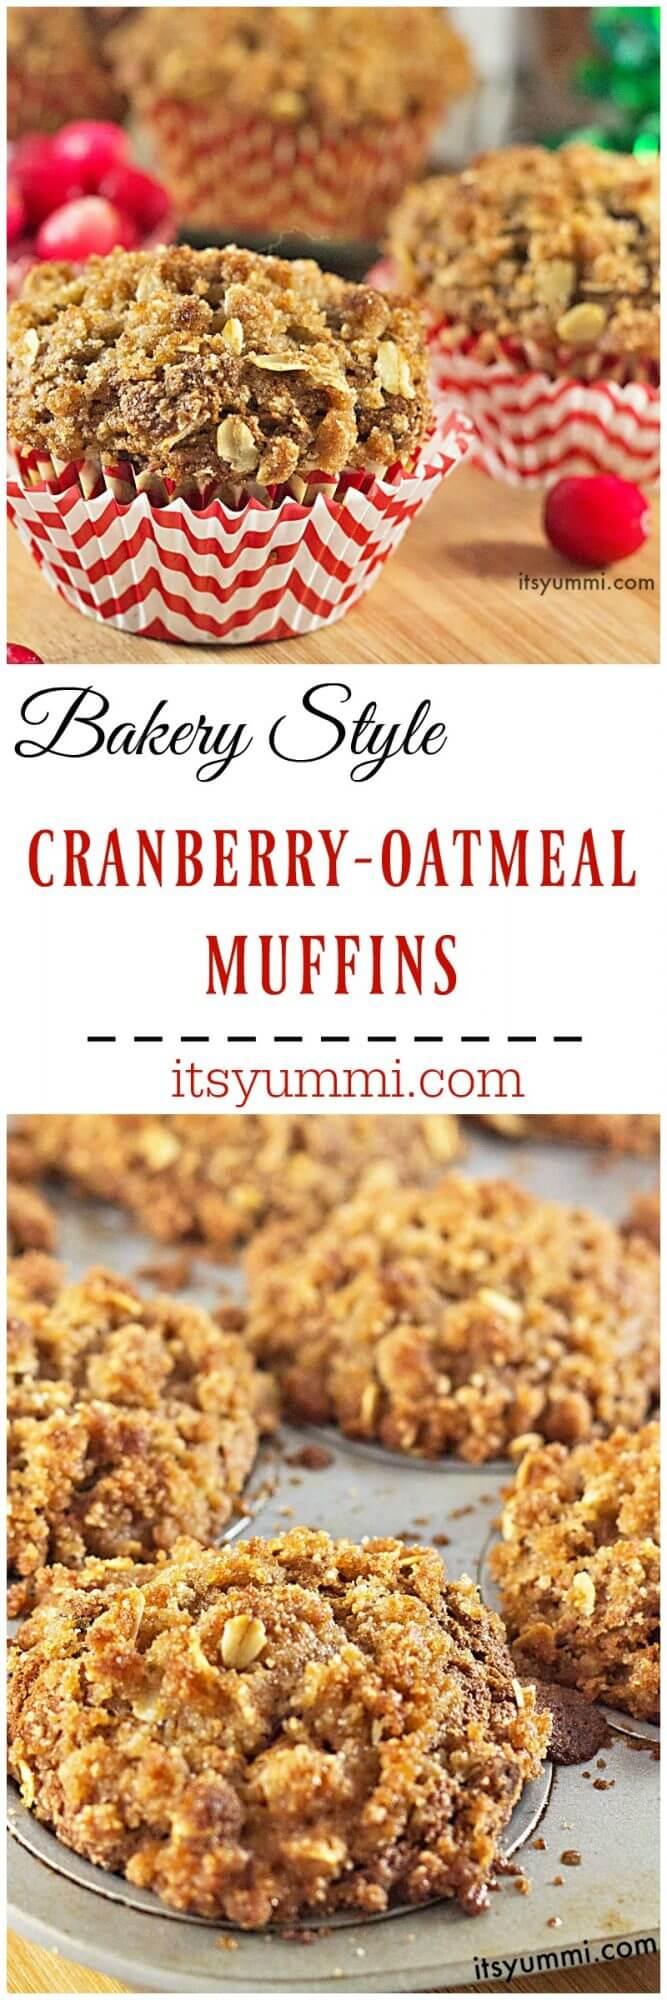 These bakery style cranberry streusel muffins are tender, moist cinnamon spiced muffins, stuffed with dried cranberries and topped with a sweet, crumbly streusel oats topping. Recipe from @itsyummi